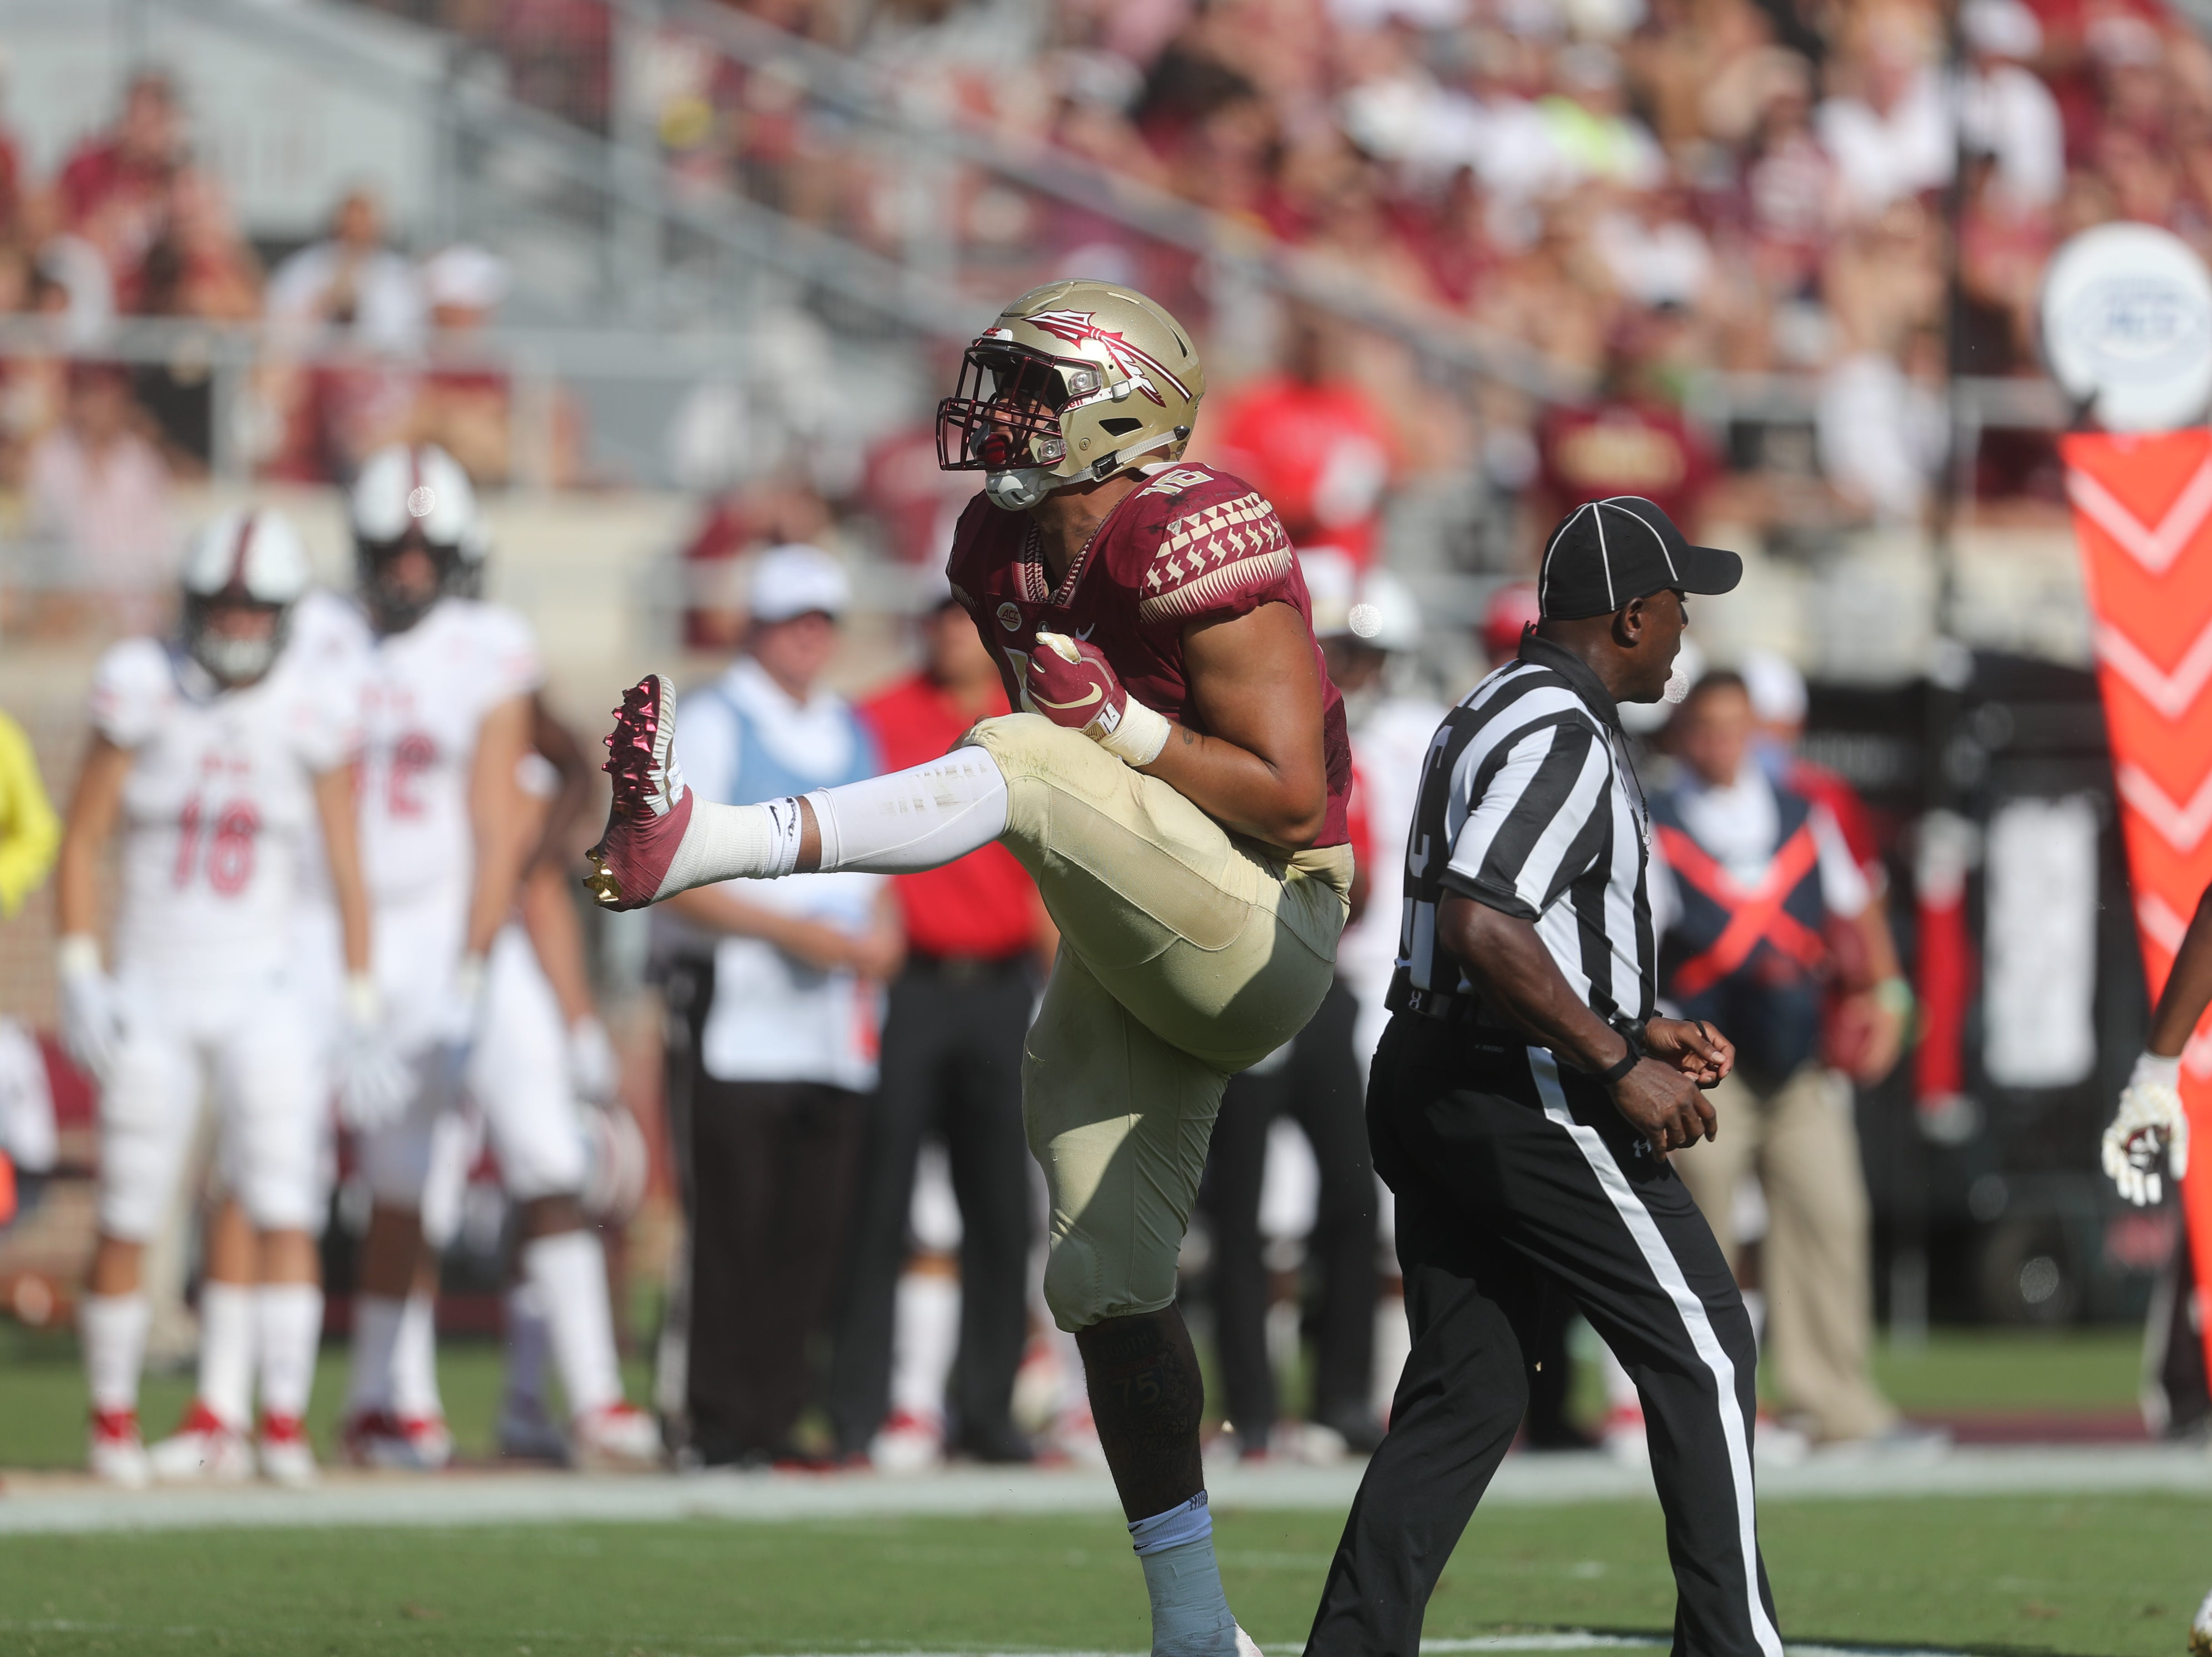 Florida State Seminoles defensive tackle Cory Durden (16) celebrates during a game between the Florida State University Seminoles and the Northern Illinois University Huskies at Doak S. Campbell Stadium in Tallahassee, Fla. Saturday, September 22, 2018.